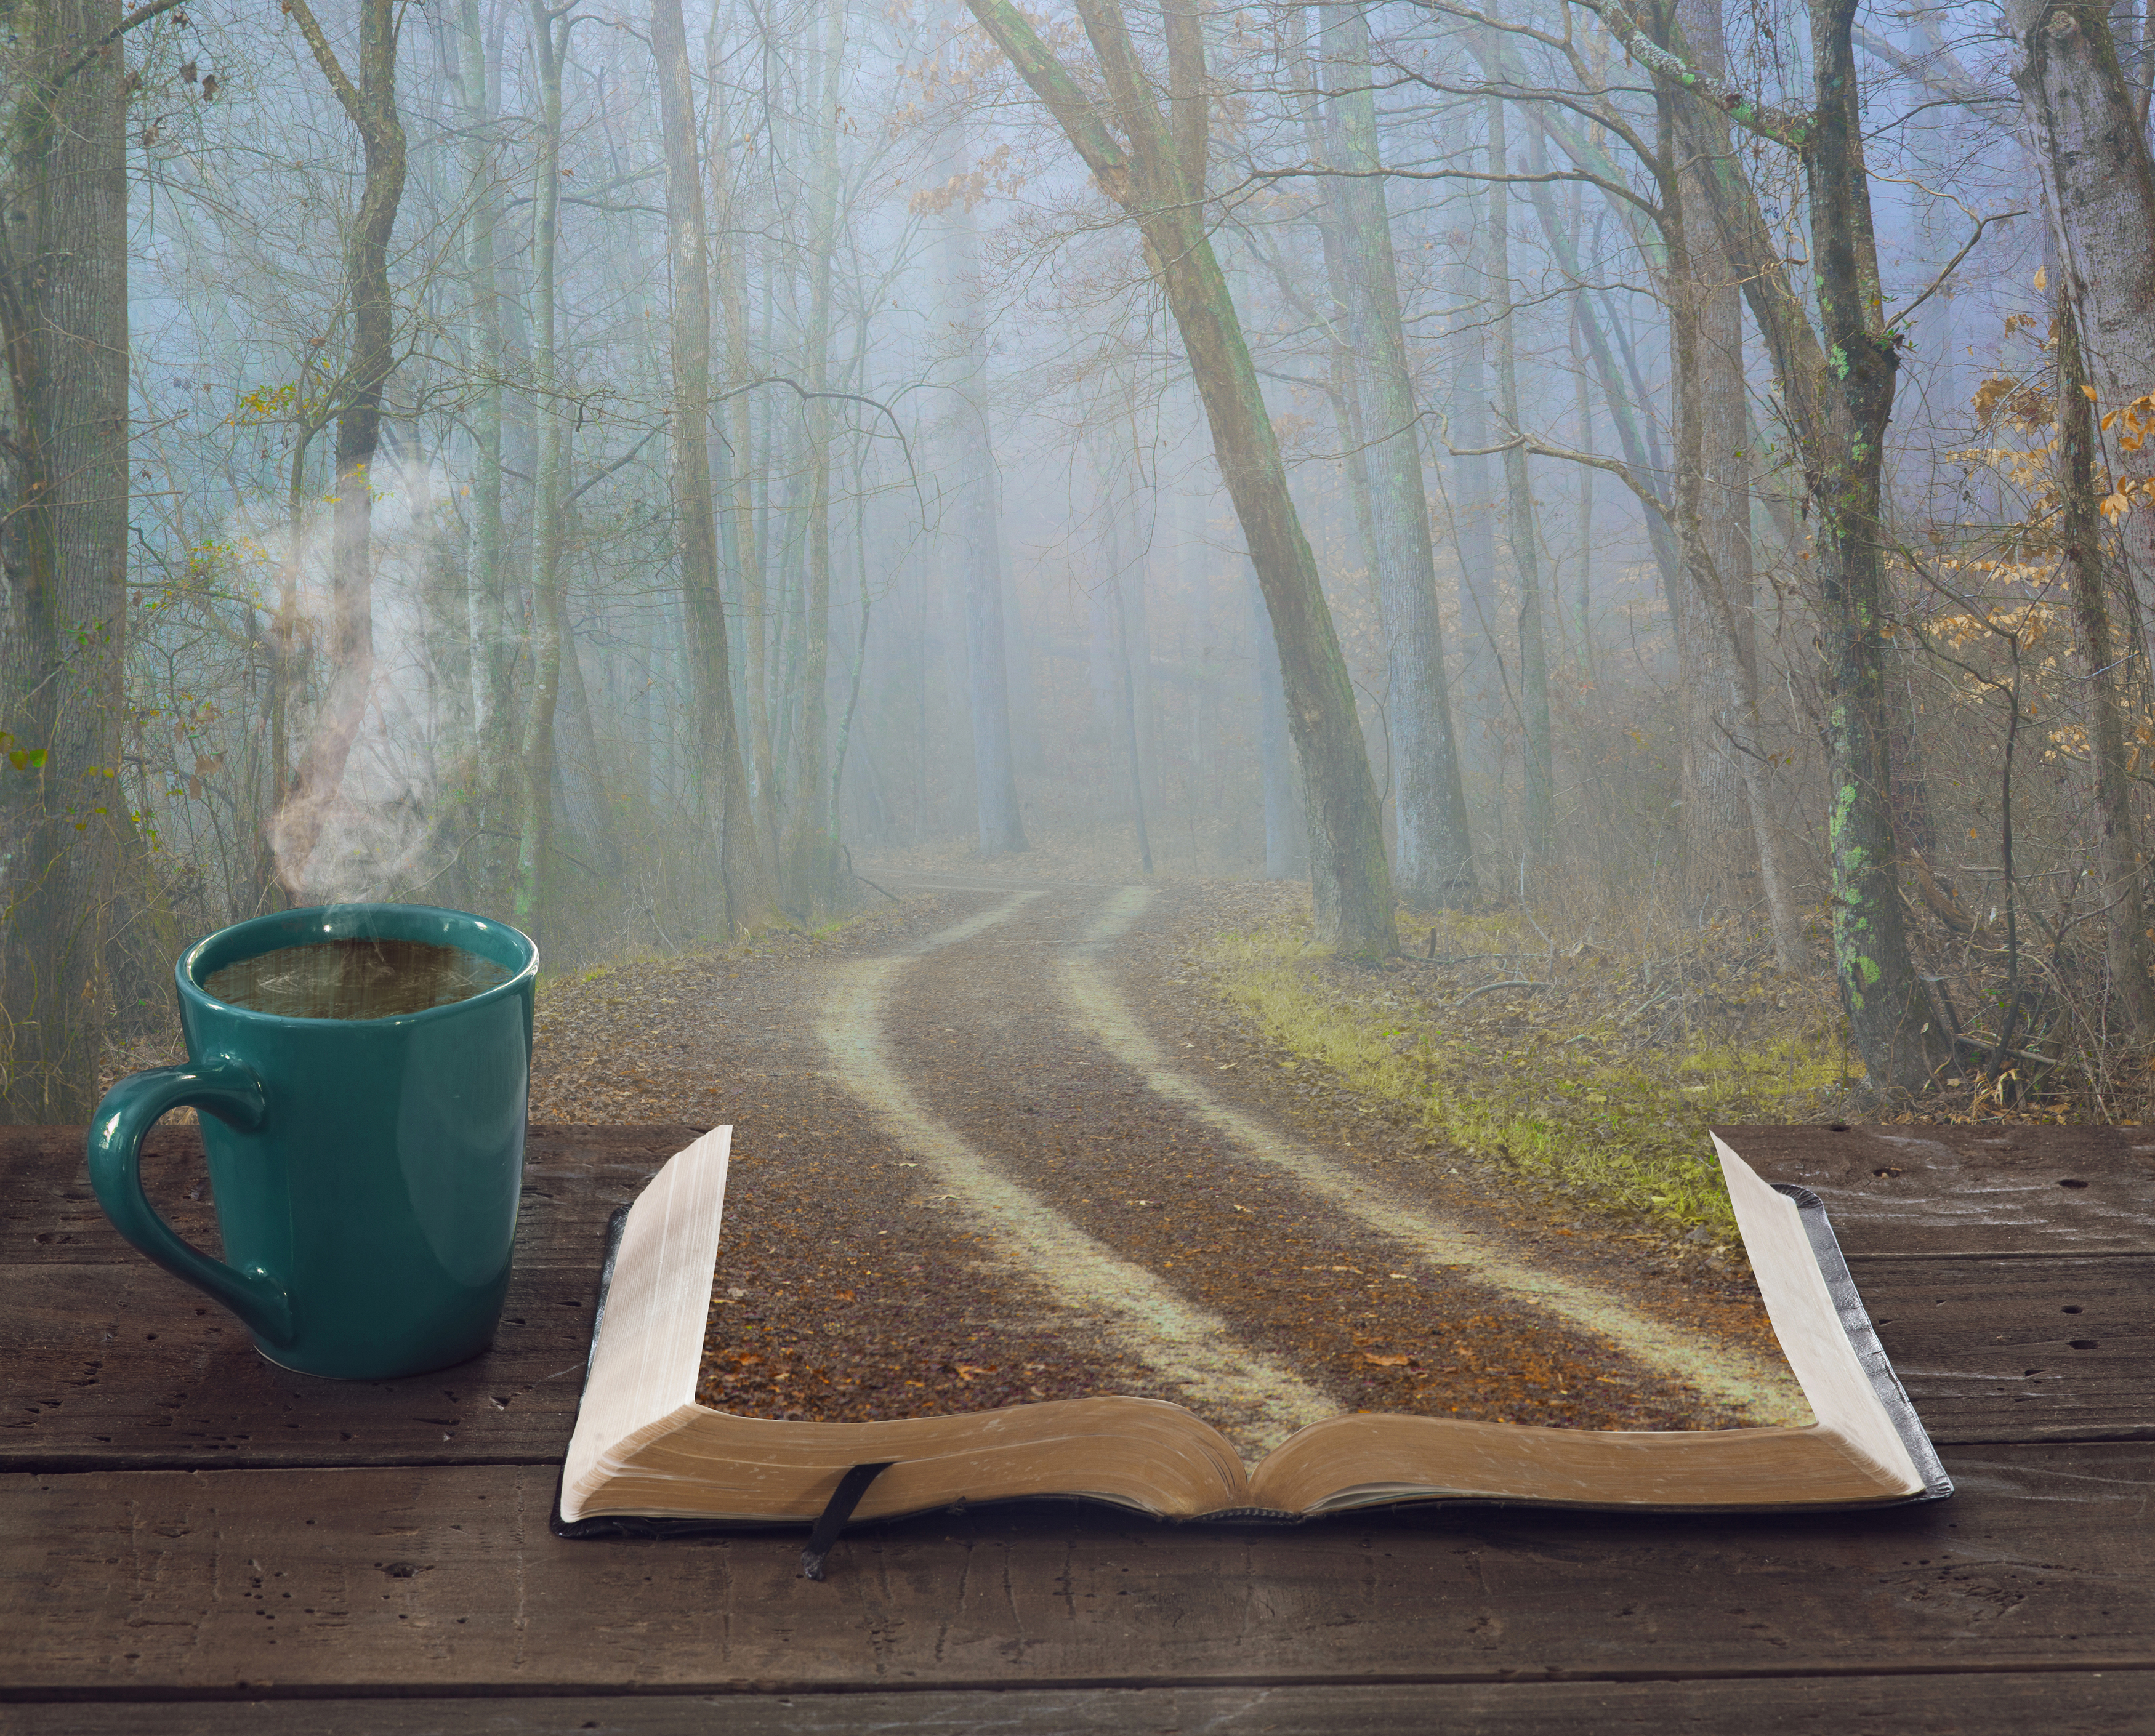 Bible and forest